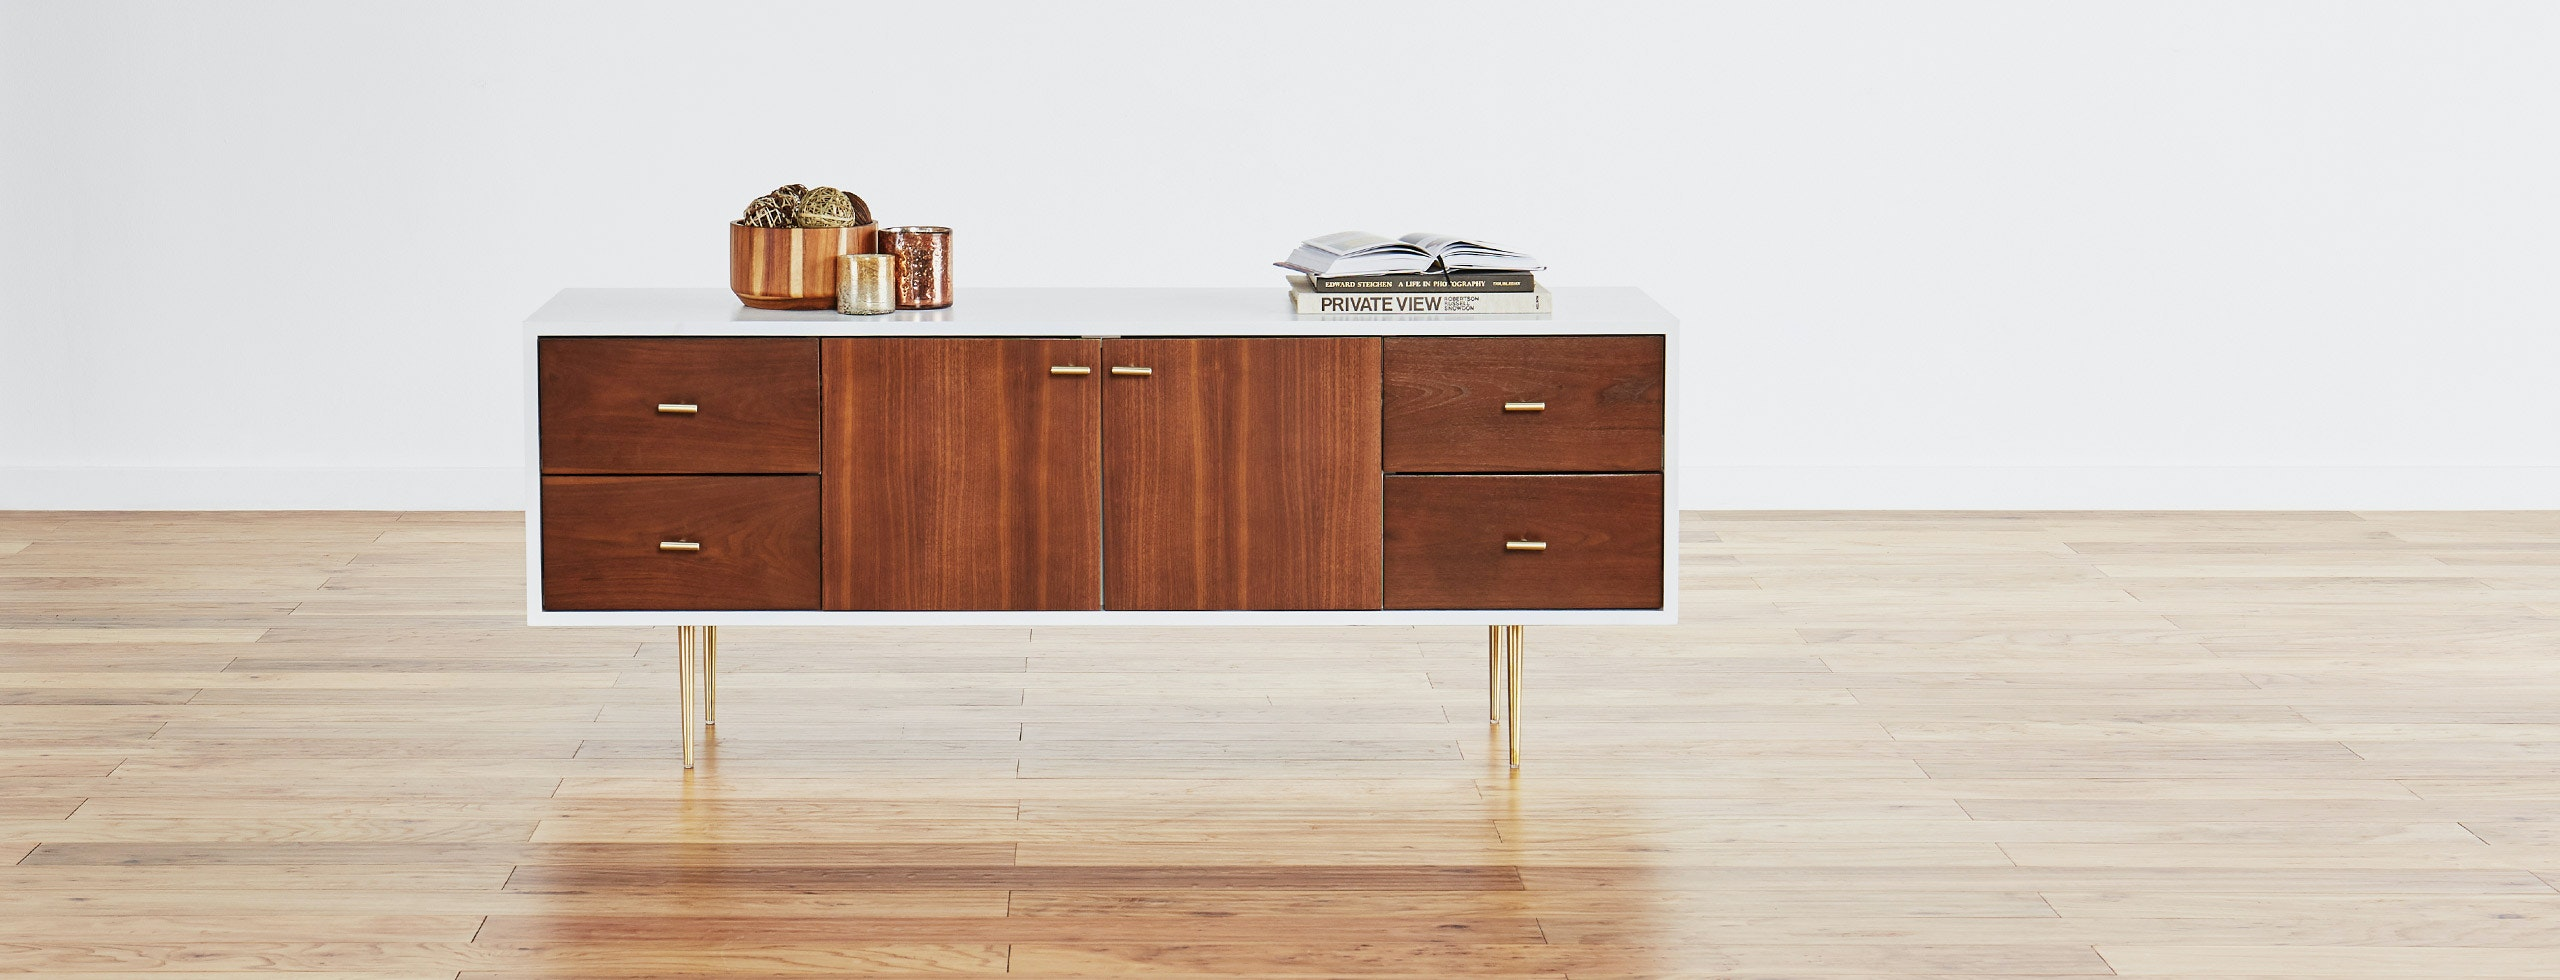 Mid Century Modern Cabinets and Storage